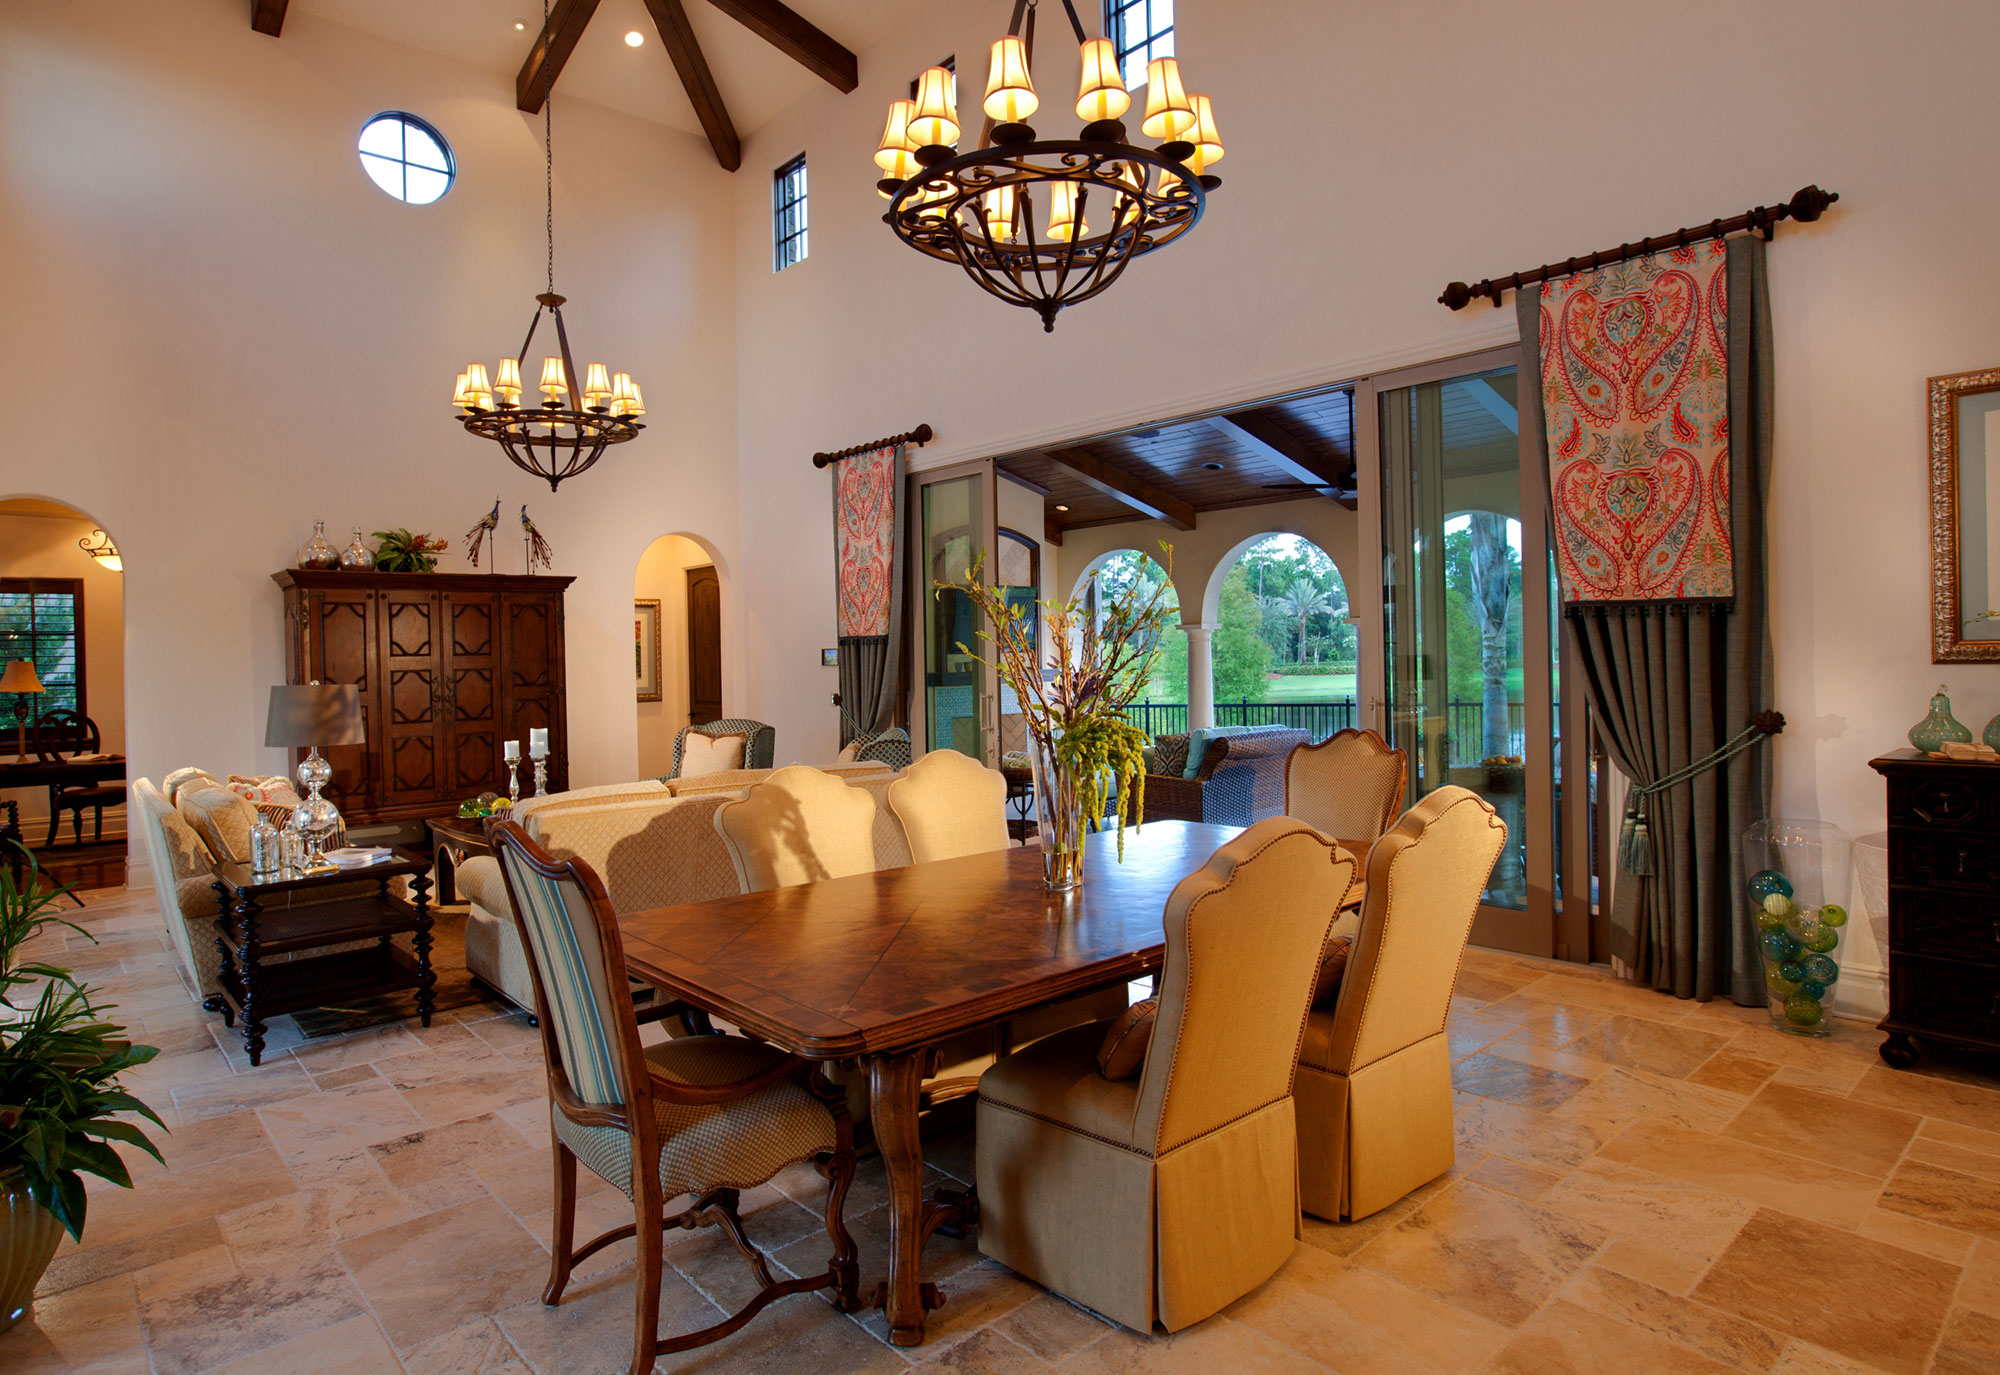 Formal Dining Rooms: Are They Necessary?